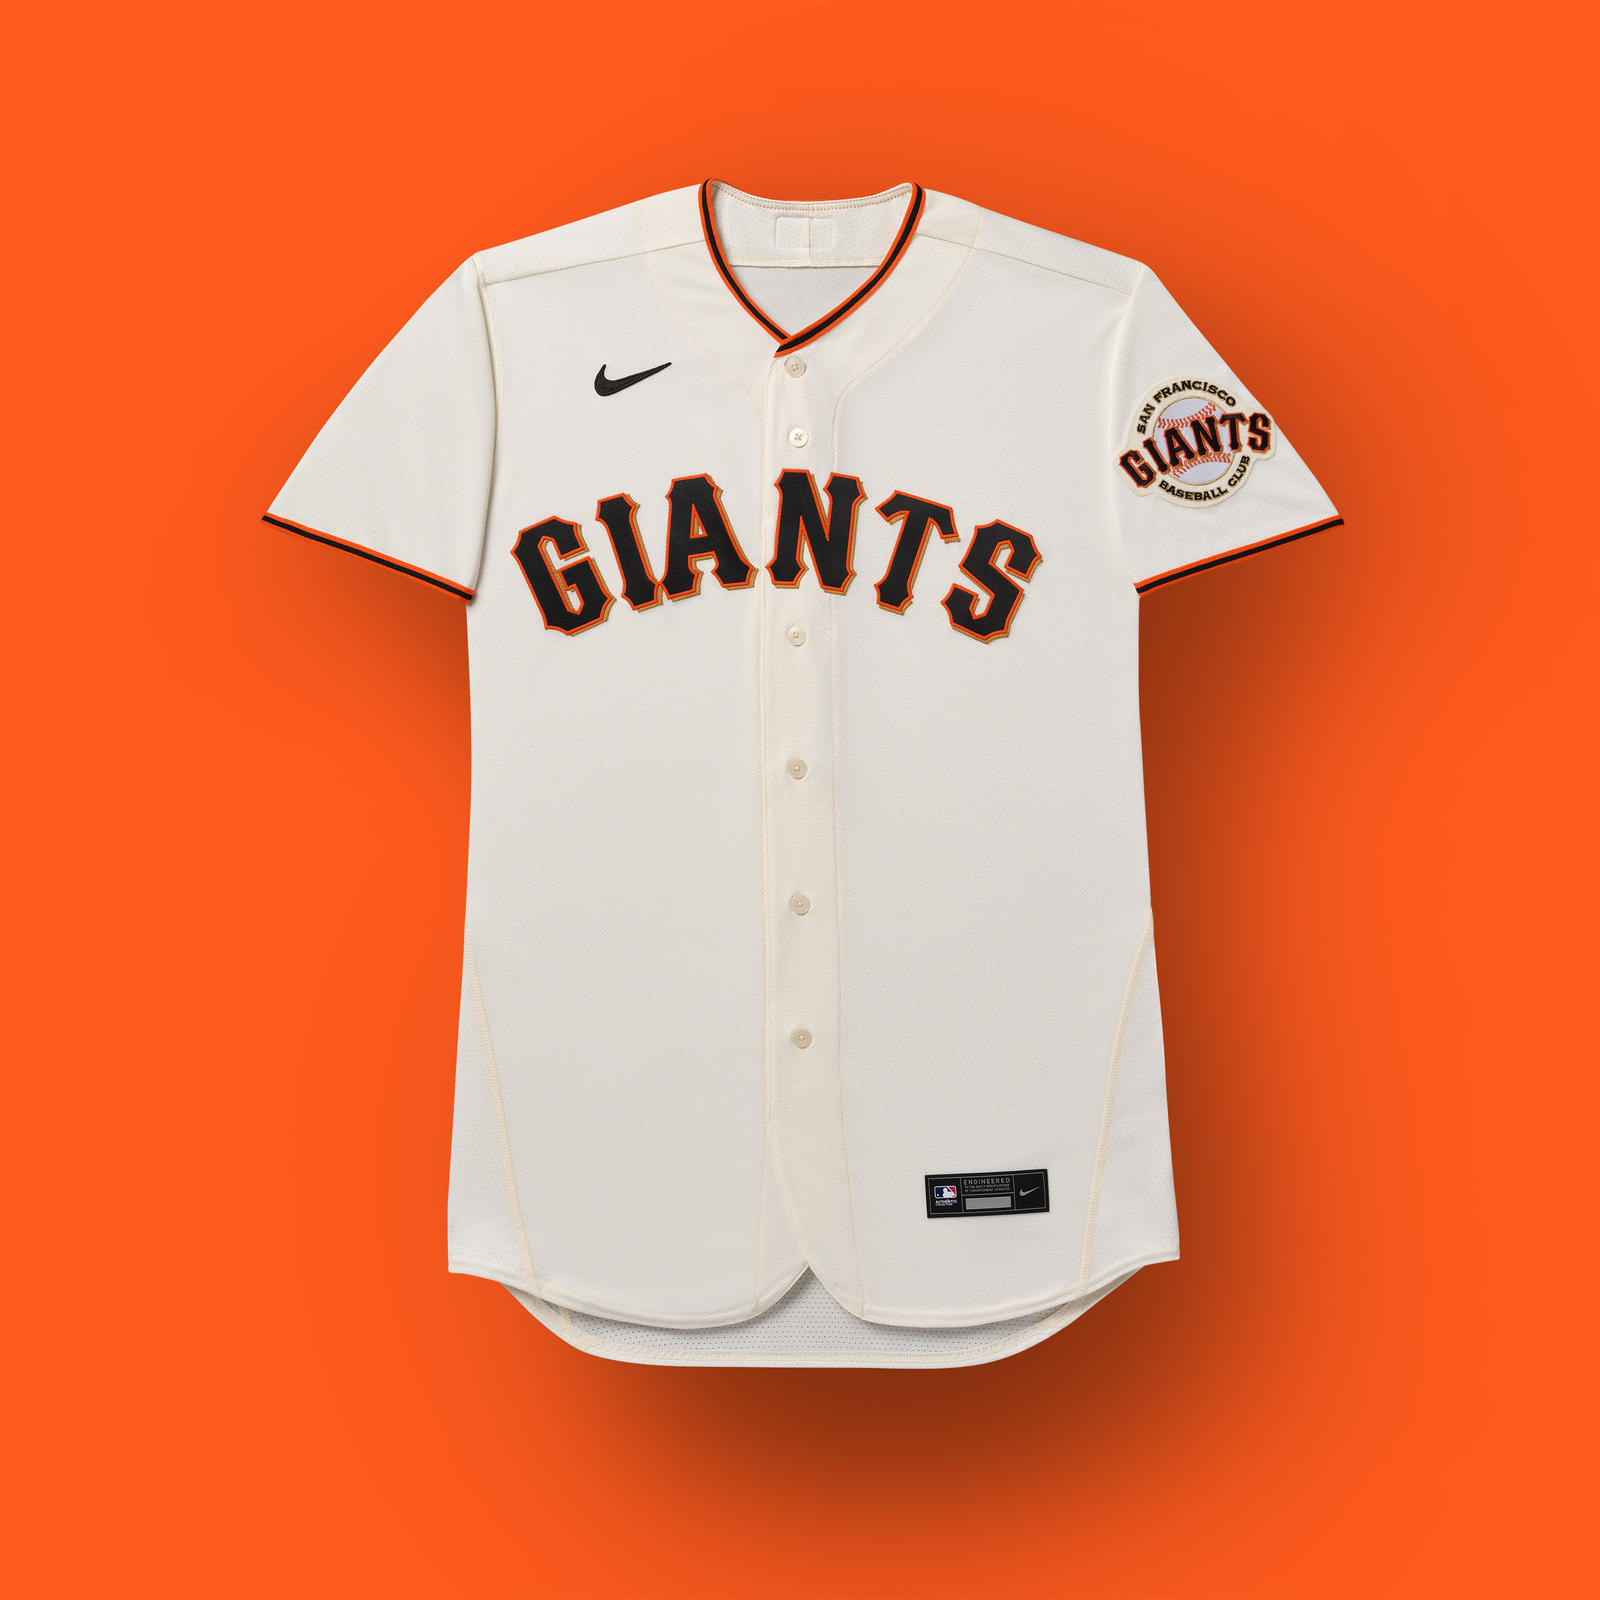 Nike x Major League Baseball Uniforms 2020 Official Images 21